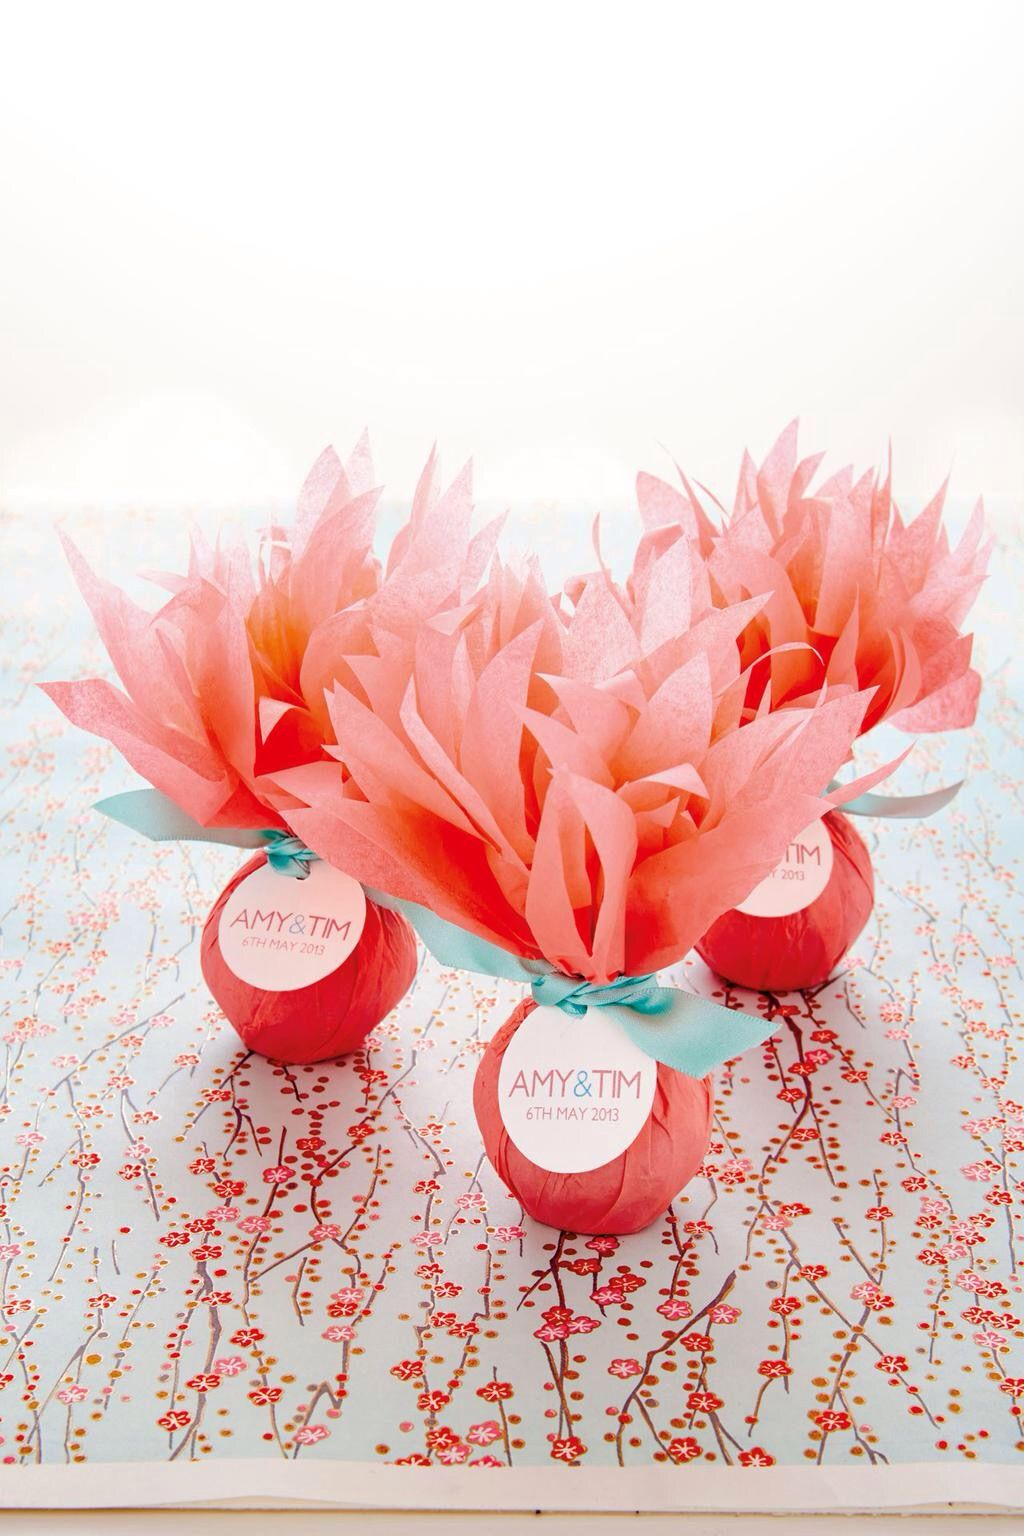 Pin by Erin McCarthy-Aulner on Bridal shower ideas | Pinterest ...